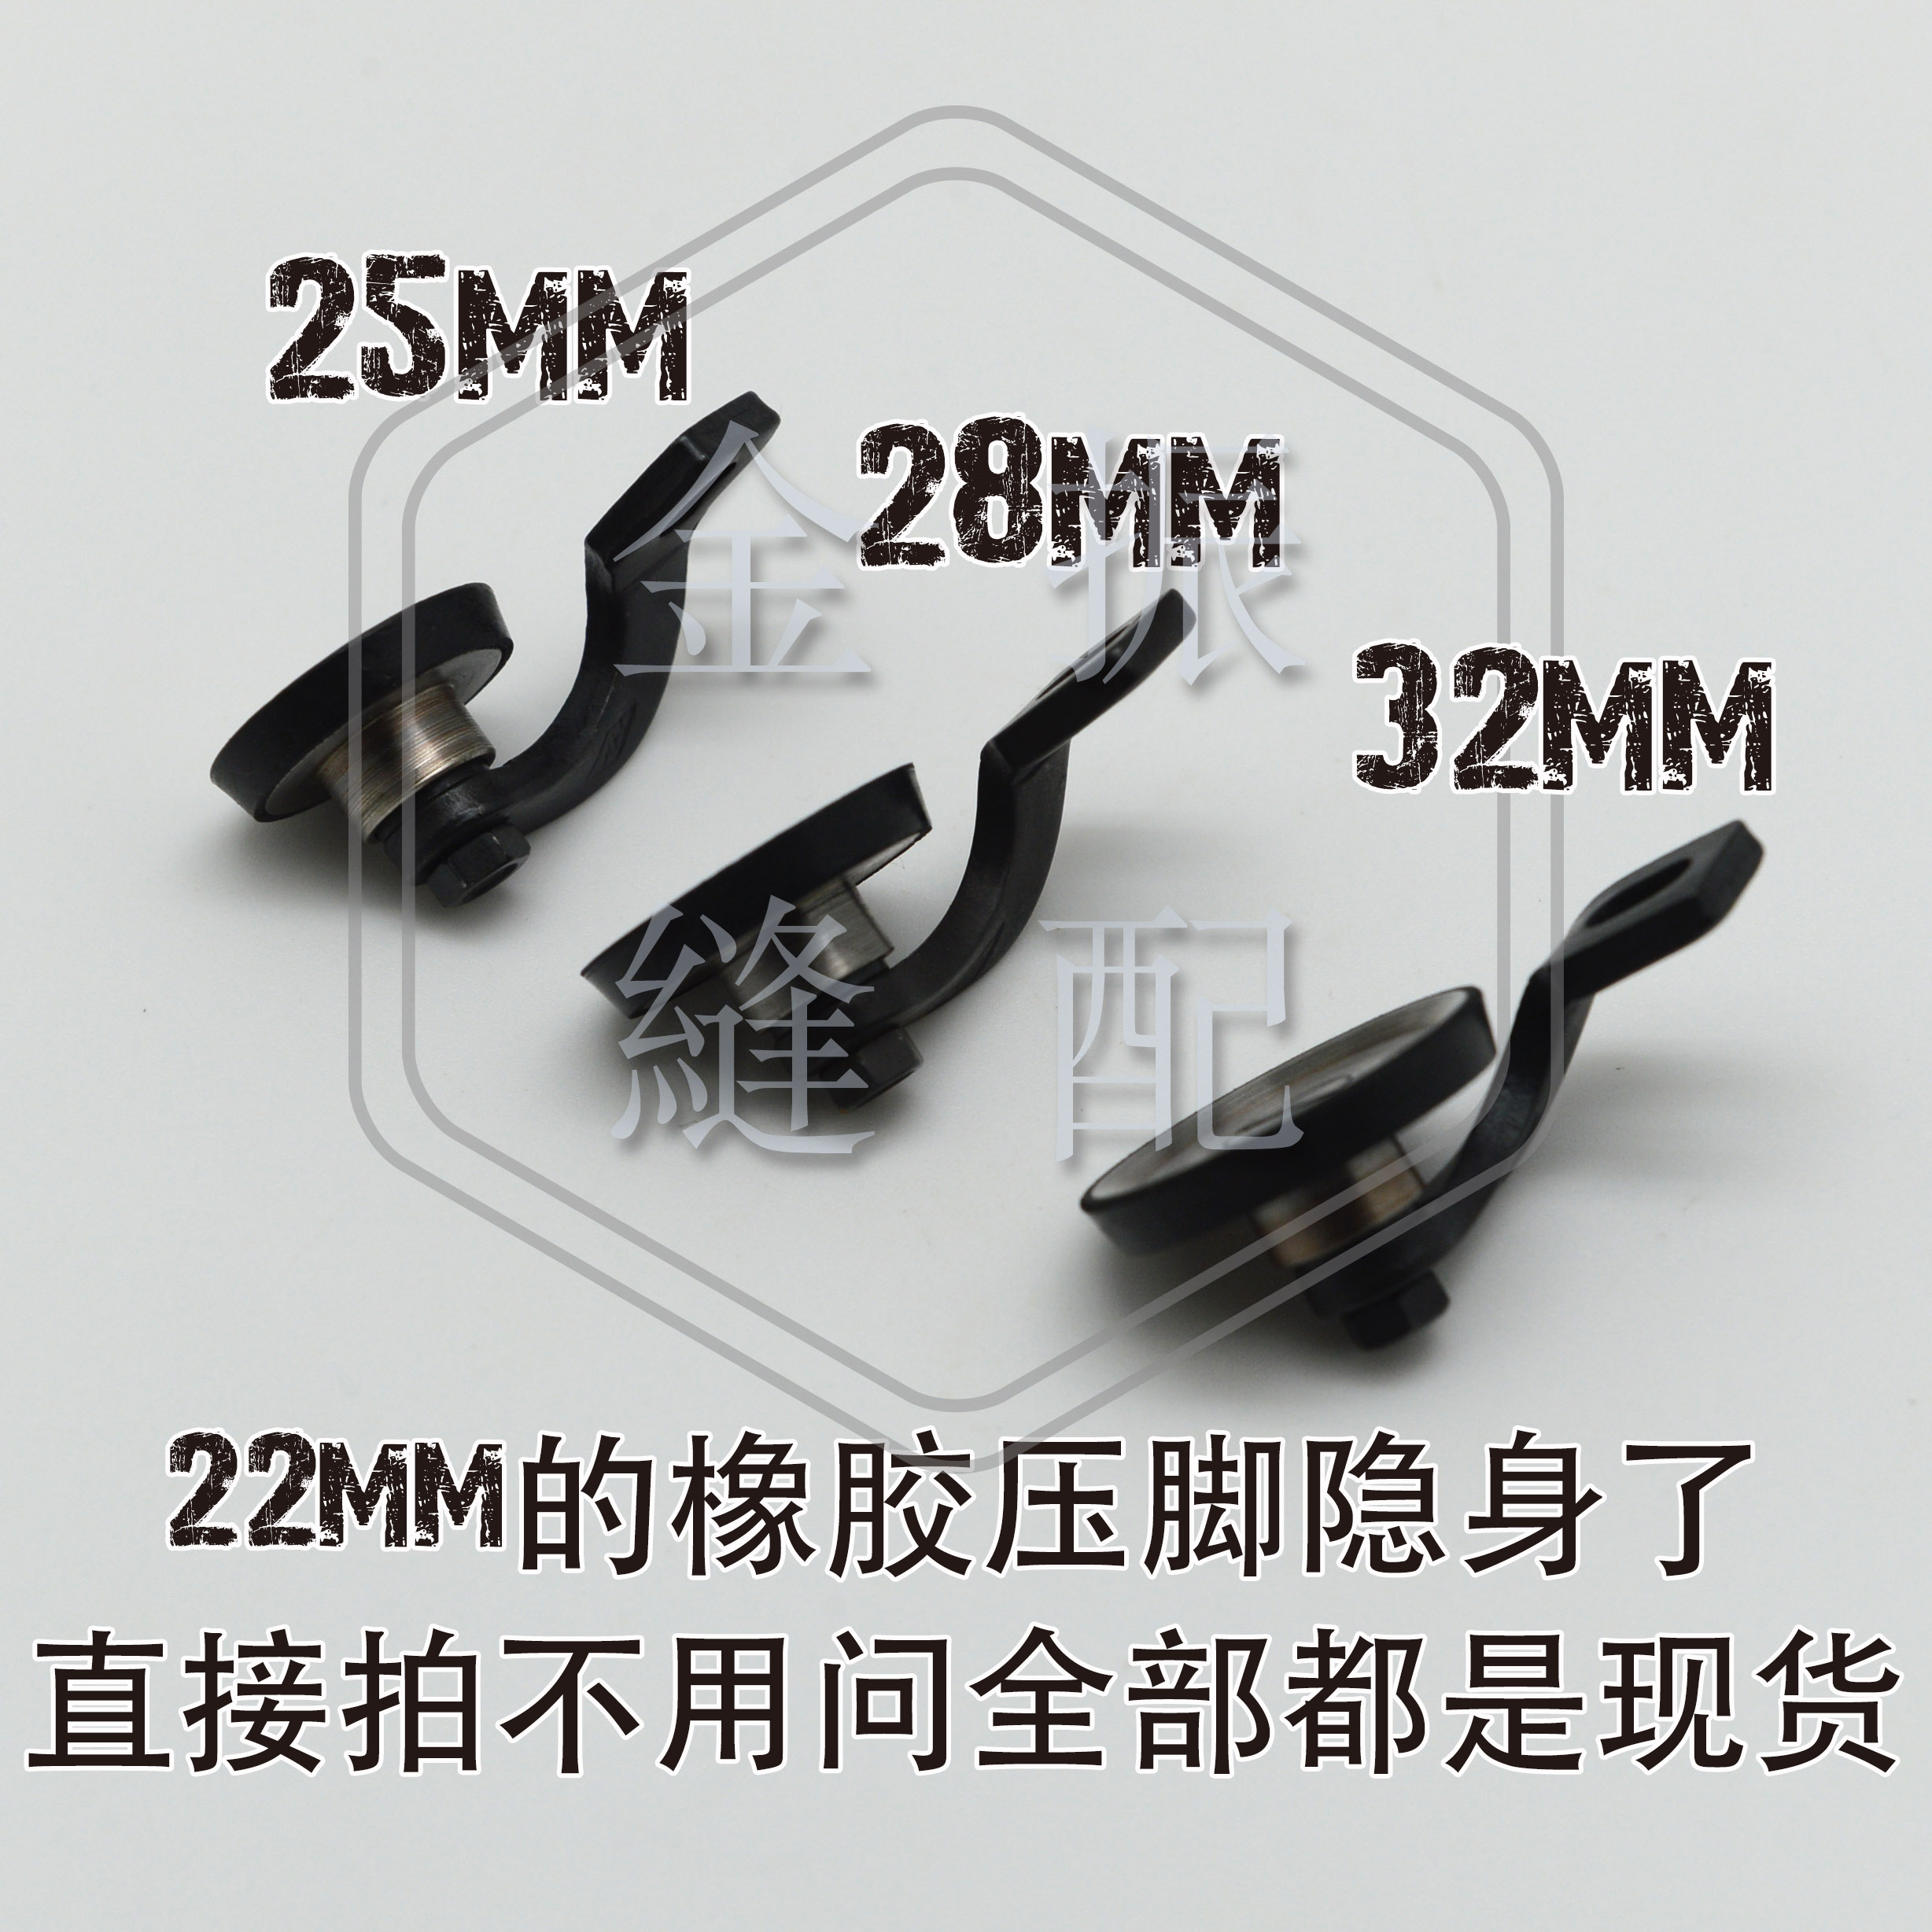 2018 Limited 810/820 High Head Car Parts, Roller Presser Foot A1213-oa (rubber Wheel), 25mm Sewing Machine Parts Manufacturers